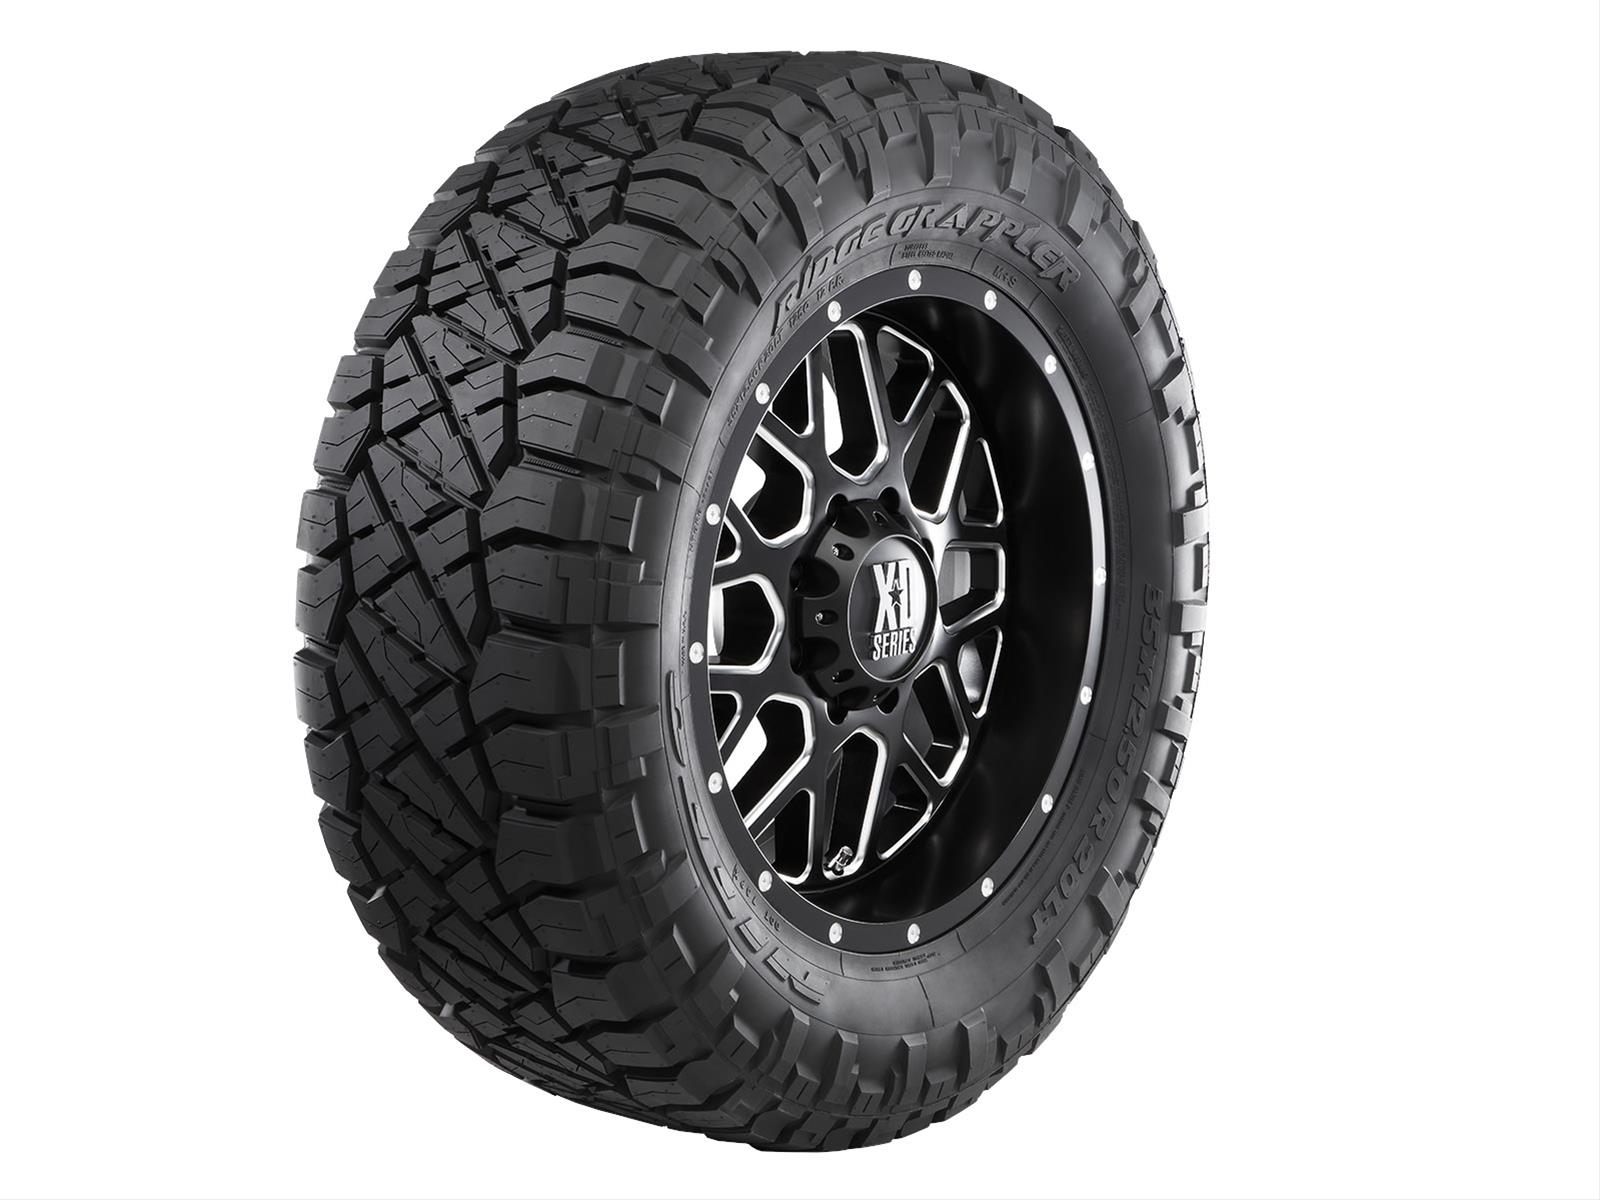 Nitto Ridge Grappler 37/13.5/R17